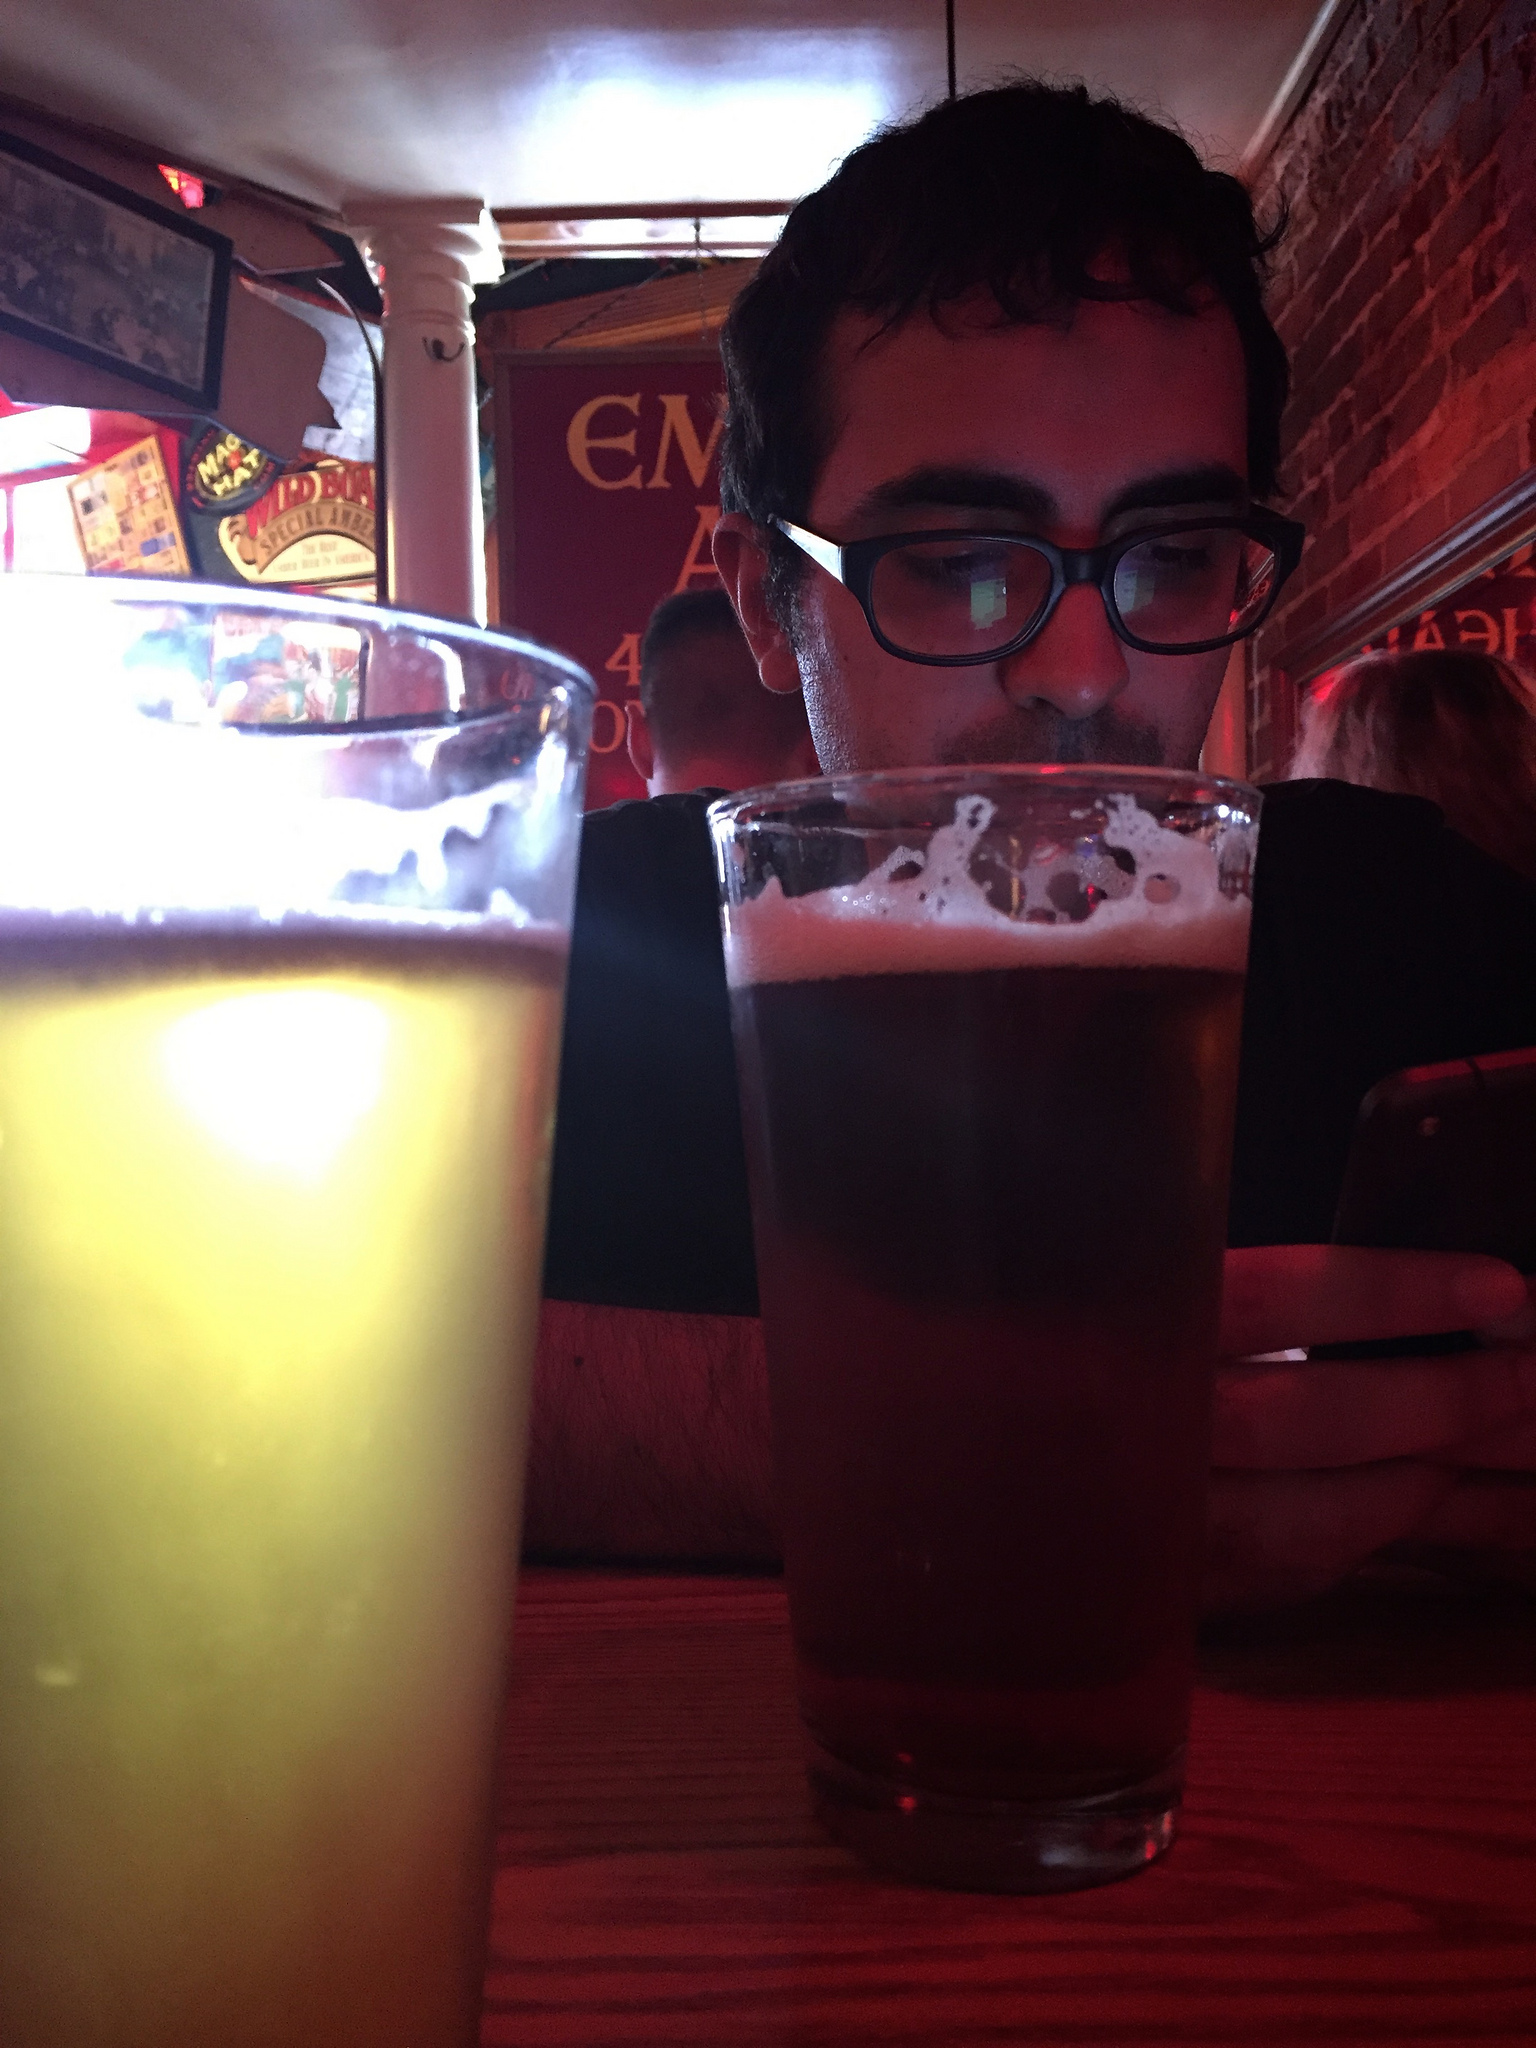 20 ounce beers